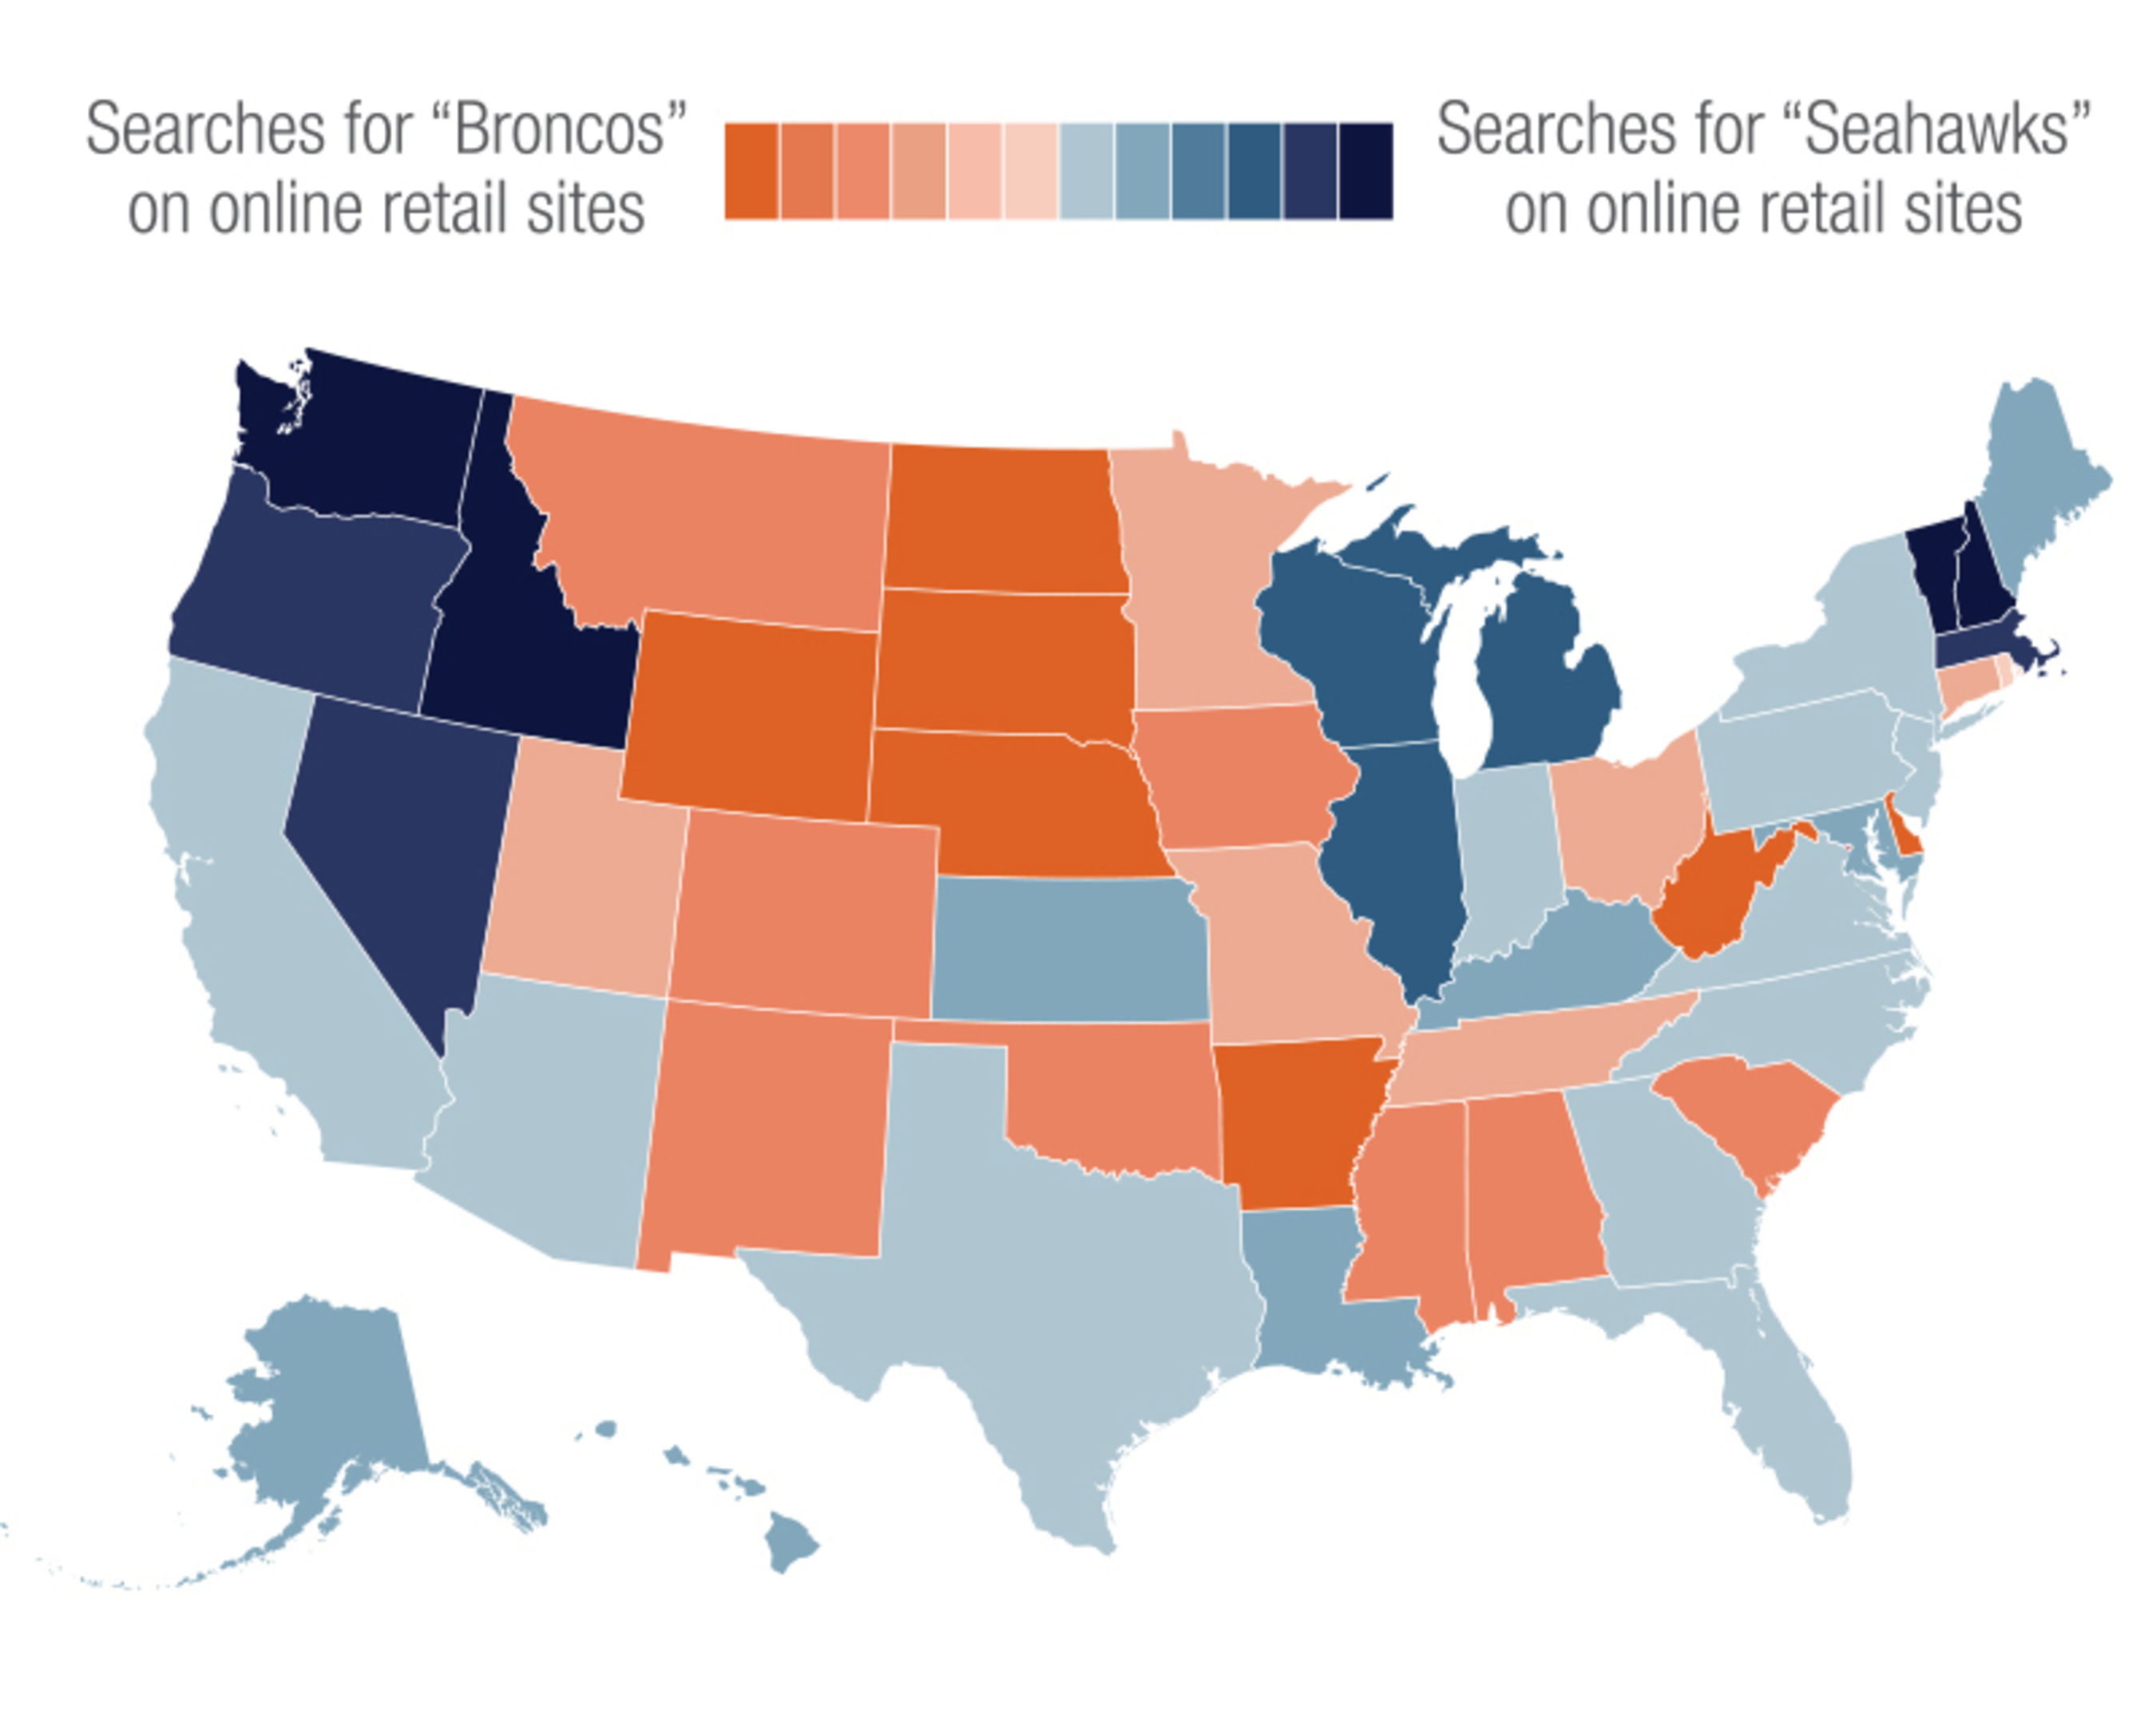 Heatmap representation of state-by-state search activity for Seahawks and Broncos fan gear shows Seattle team ...